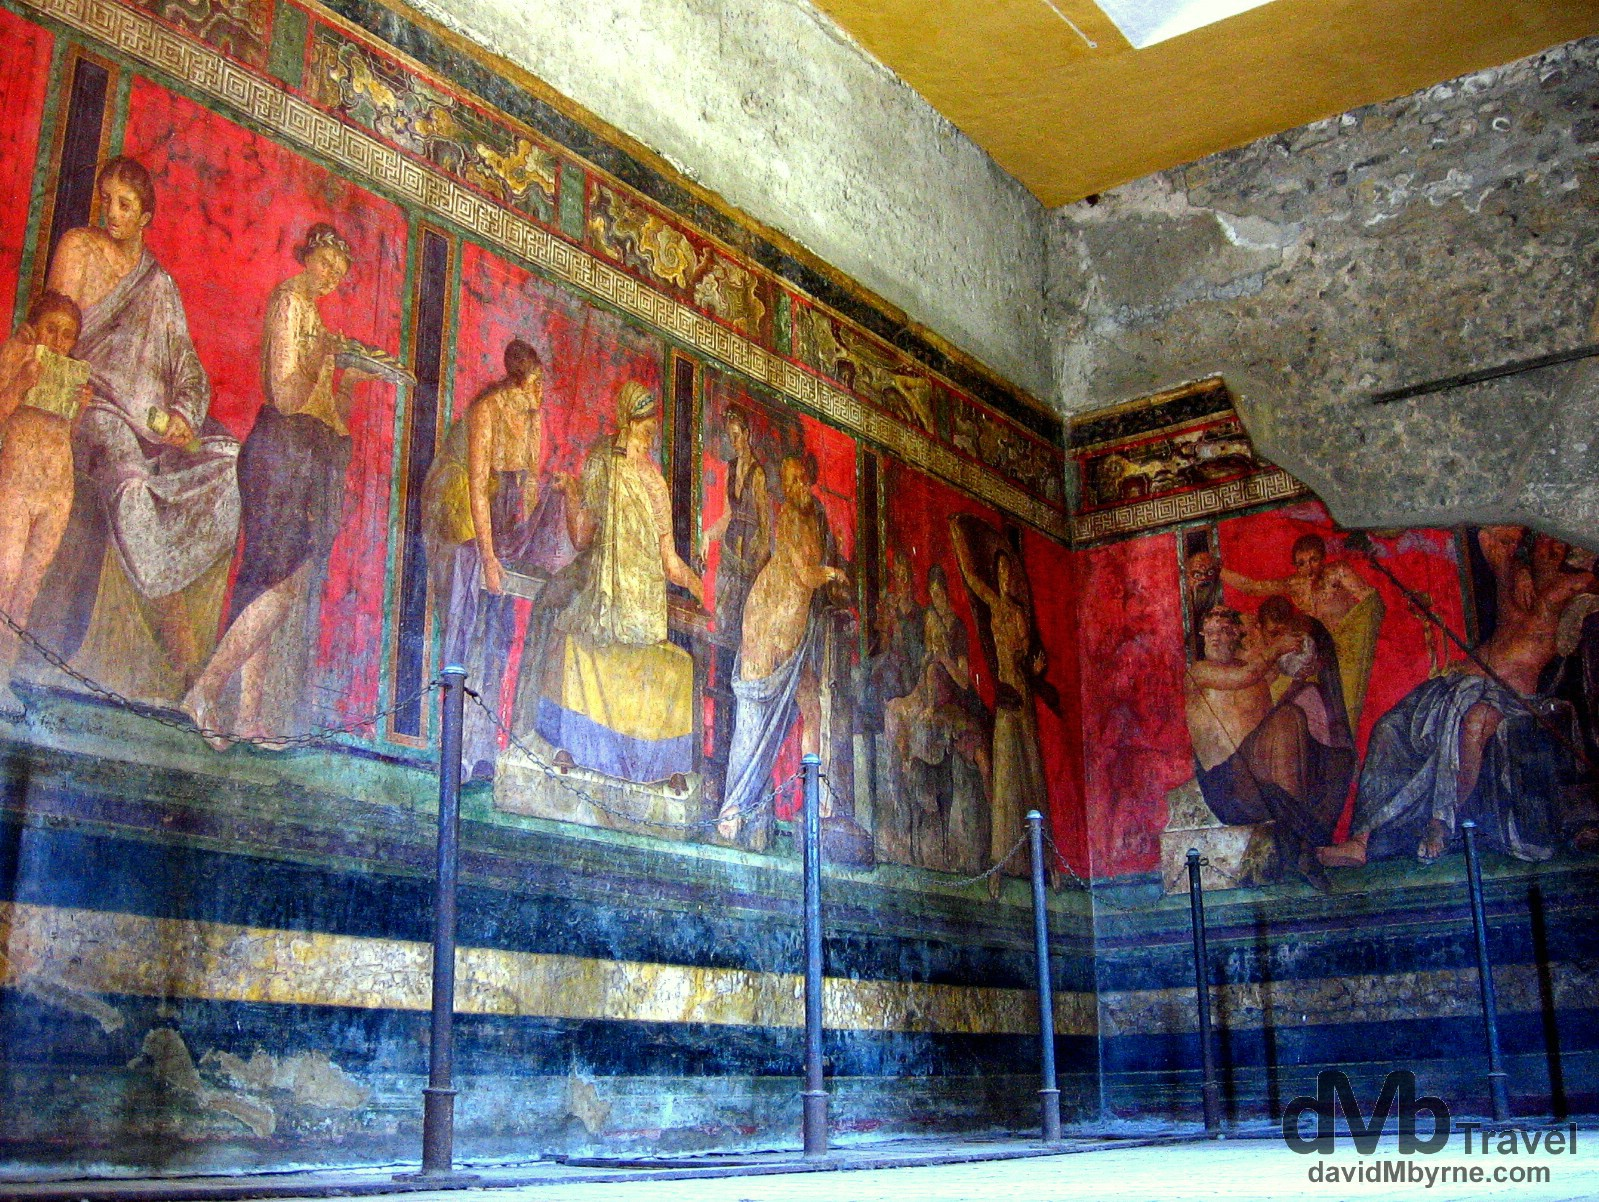 Murals in Villa dei Misteri, Pompeii, Campania, Italy. September 5th, 2007.